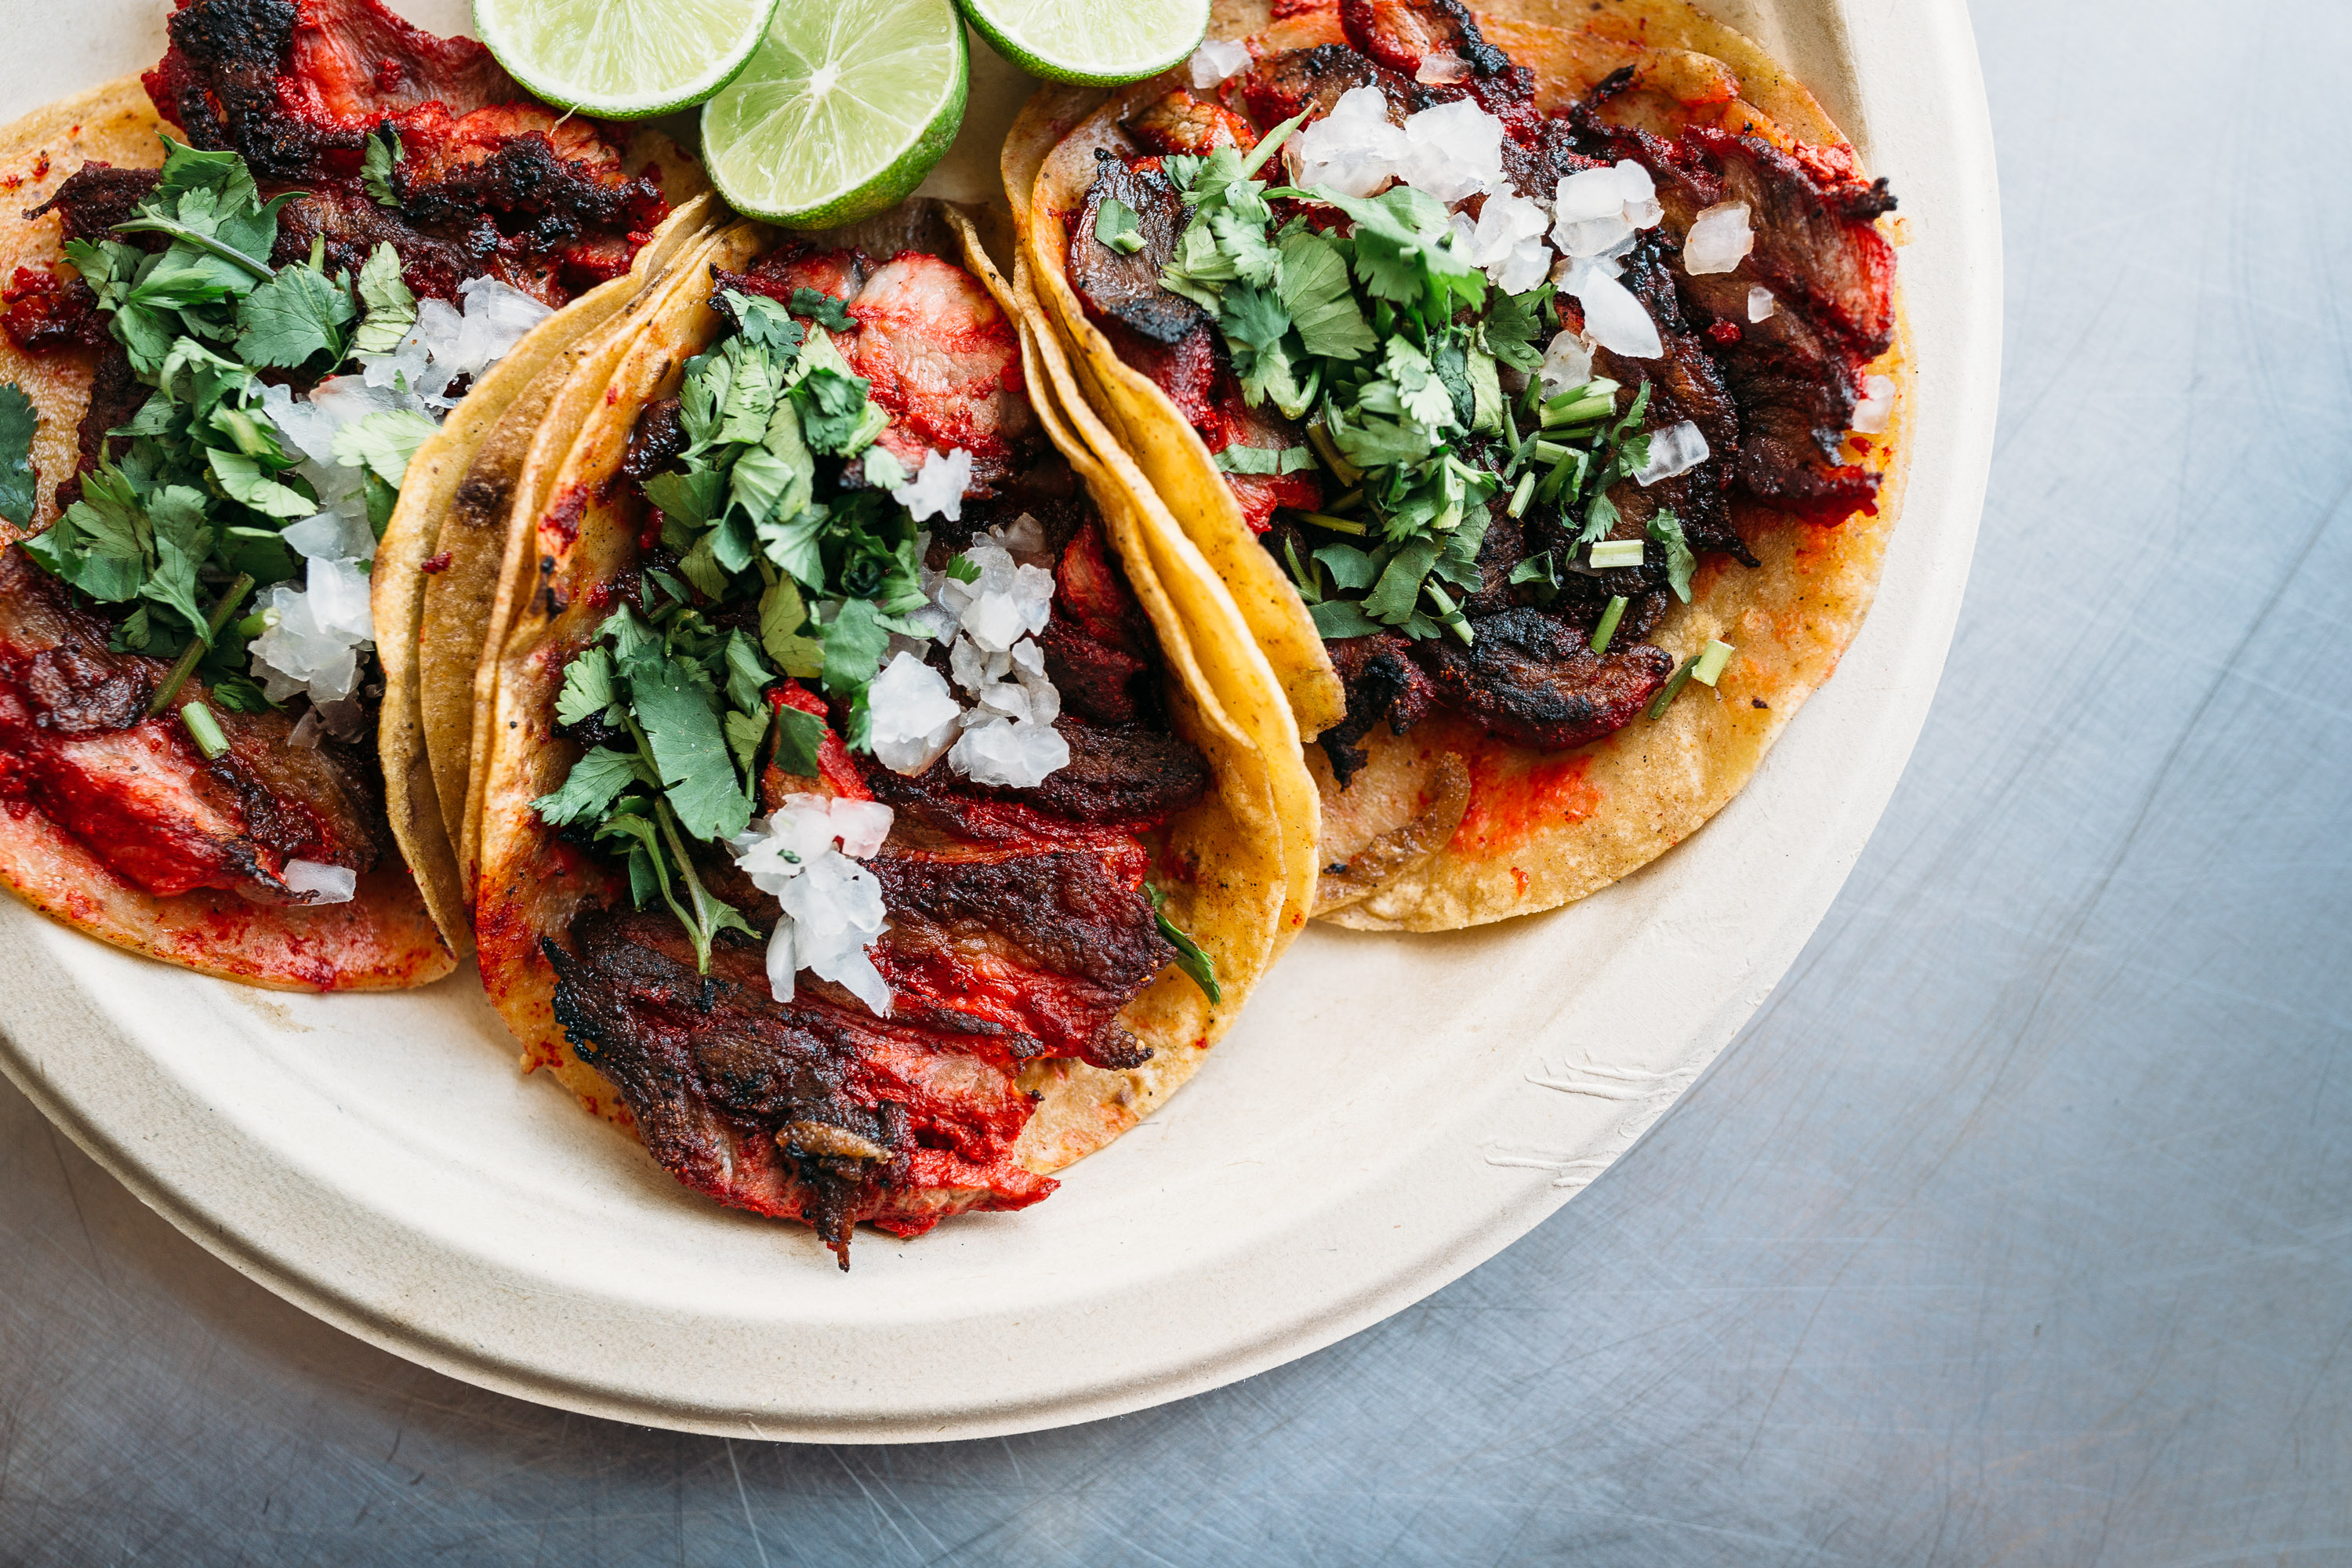 Tacos de trompo garnished with onion, lime, and cilantro